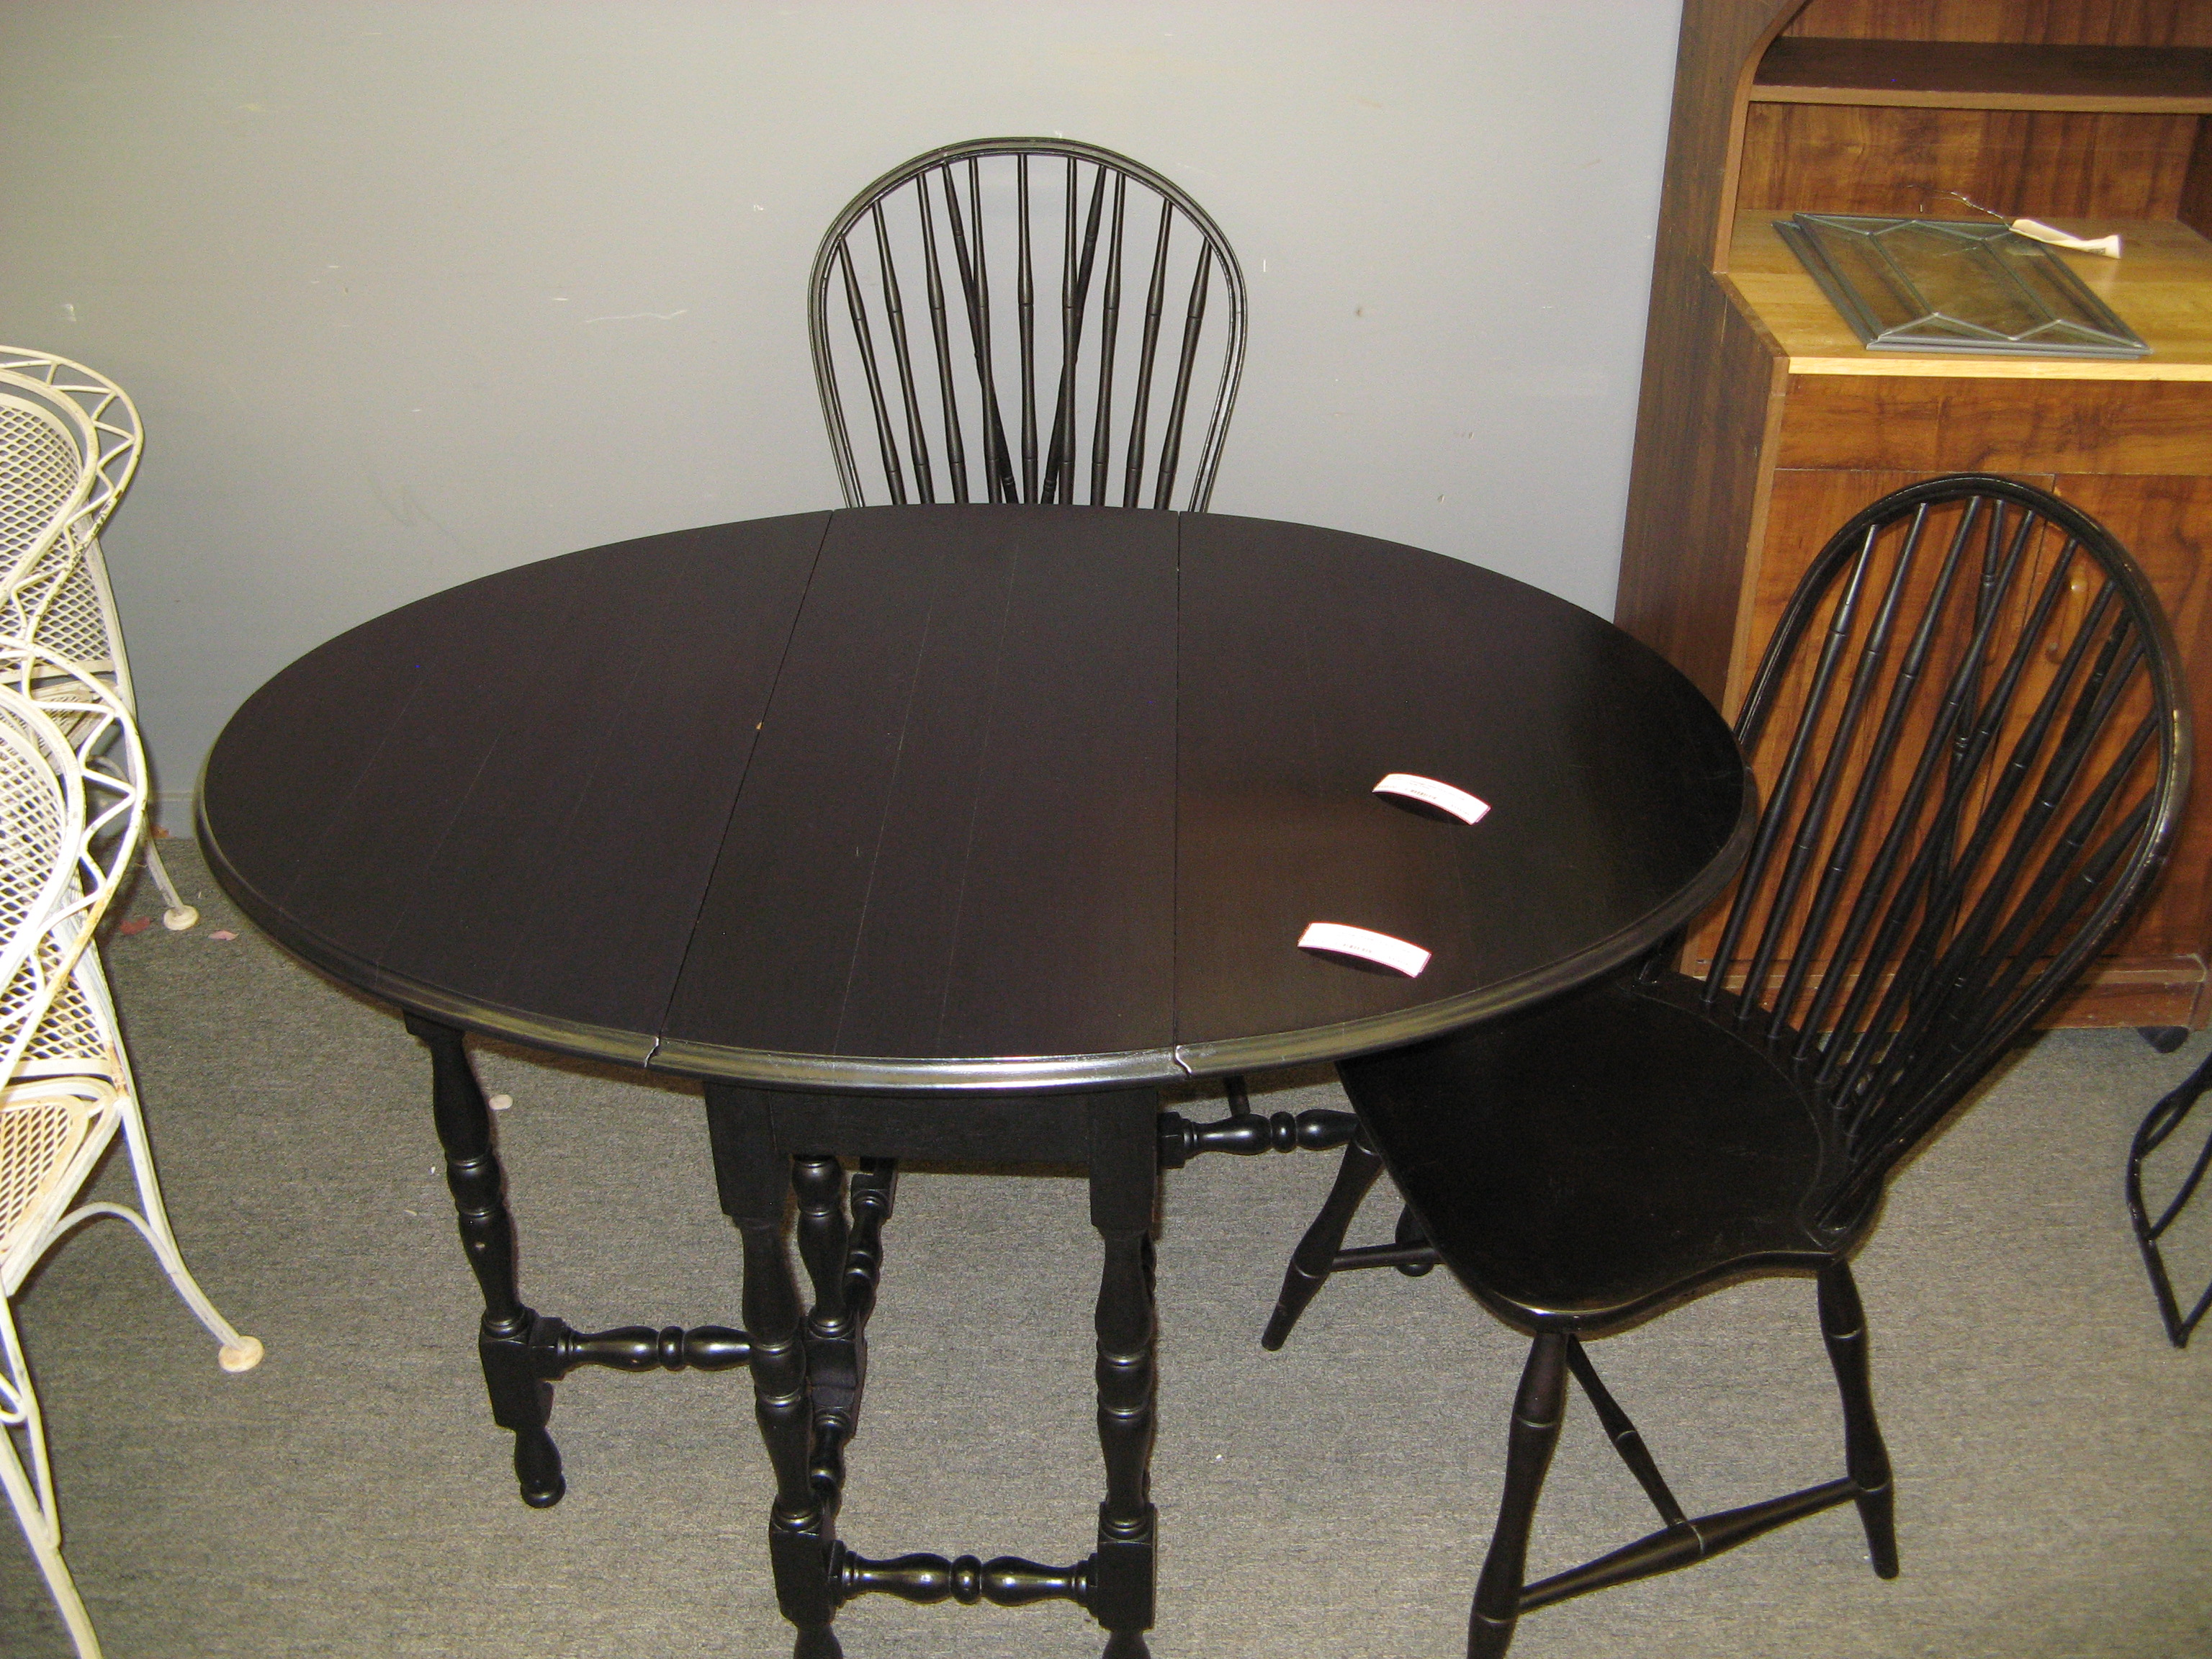 Vintage Double Drop Leaf Gate Leg Table Set, Black